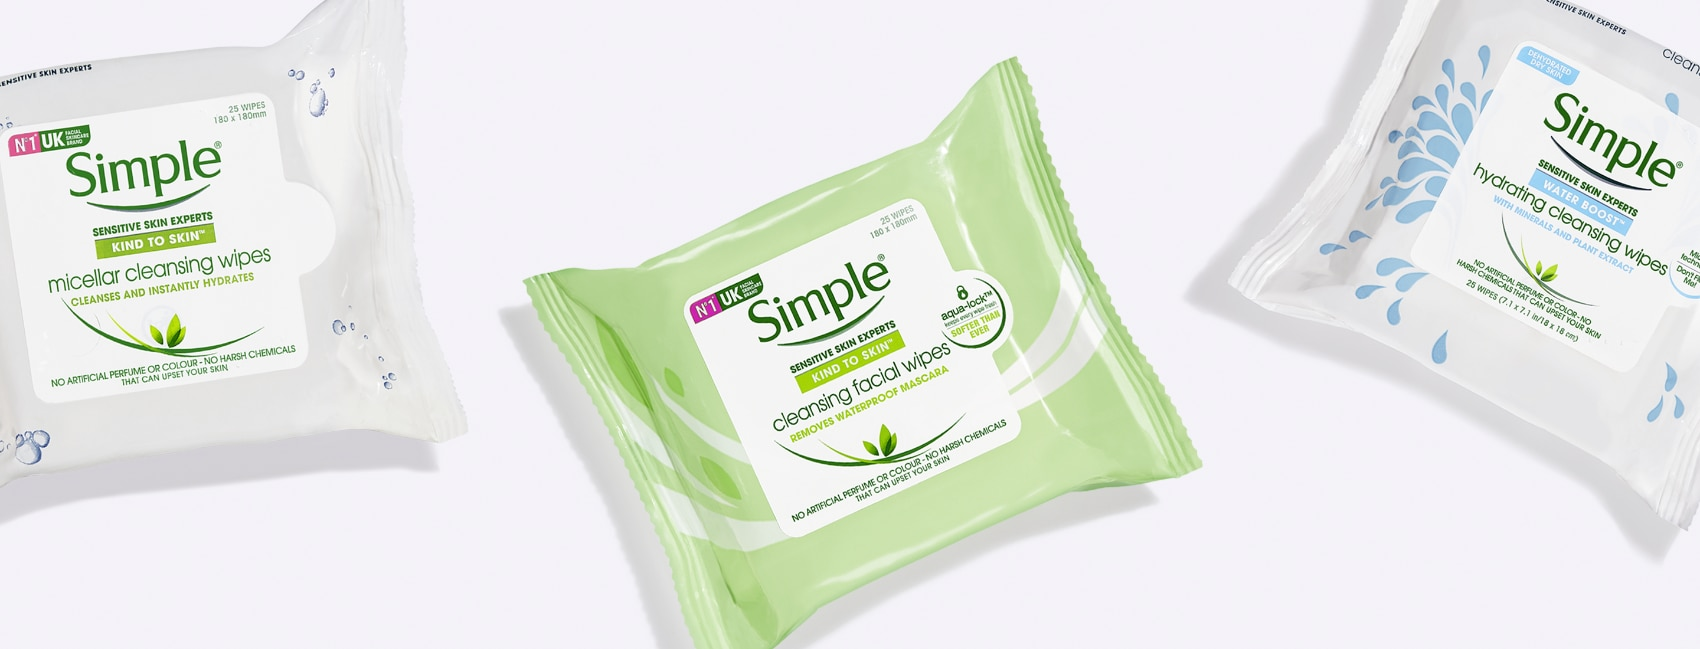 Simple facial cleansing wipes BANNER